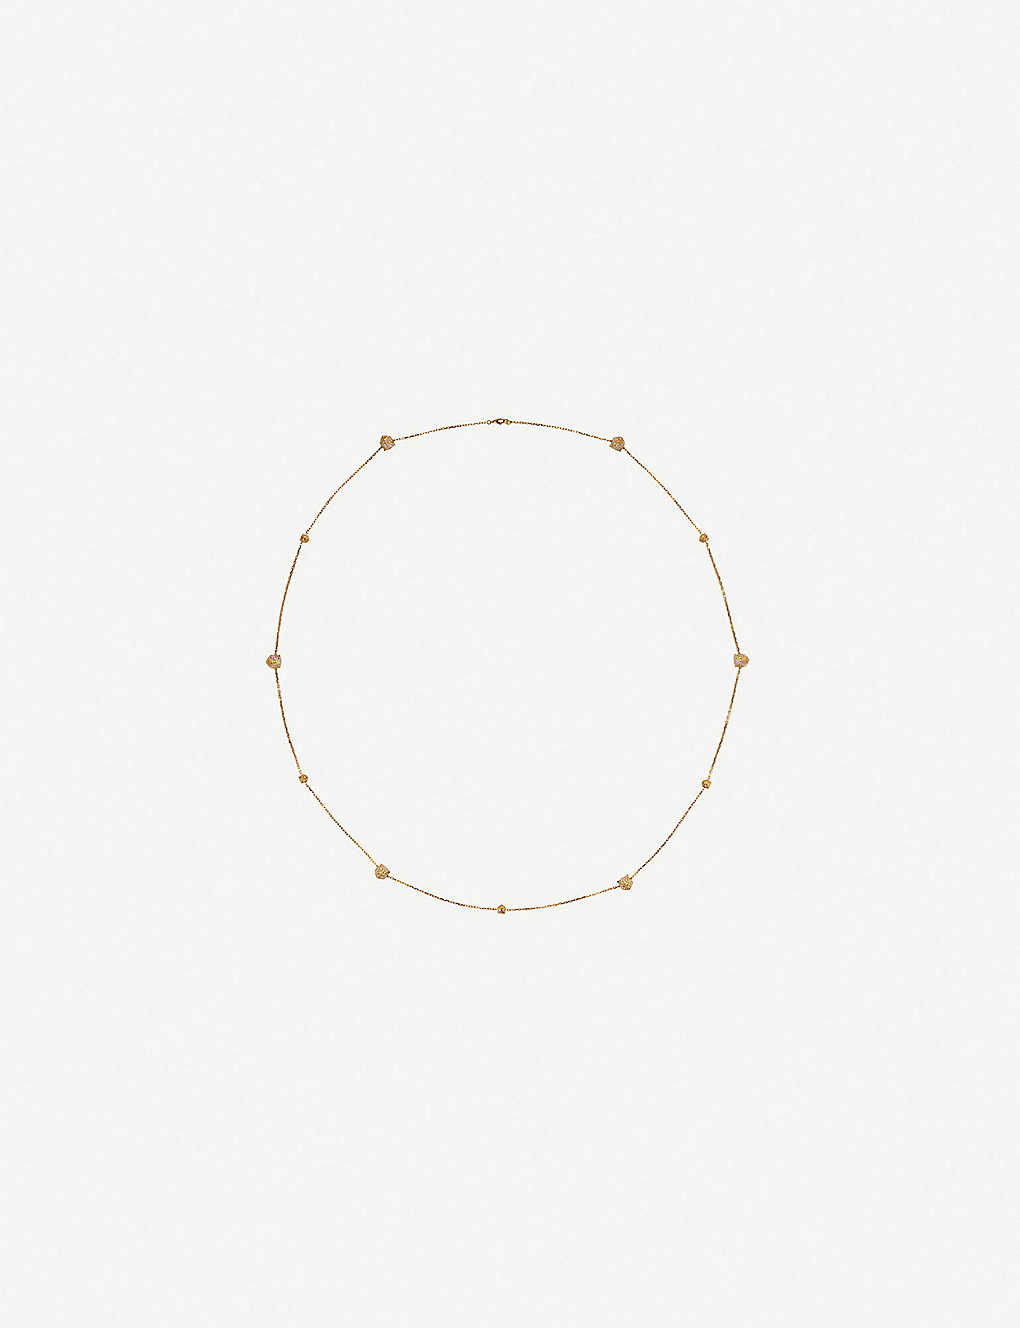 GUCCI: Le Marché des Merveilles 18ct yellow-gold and X necklace